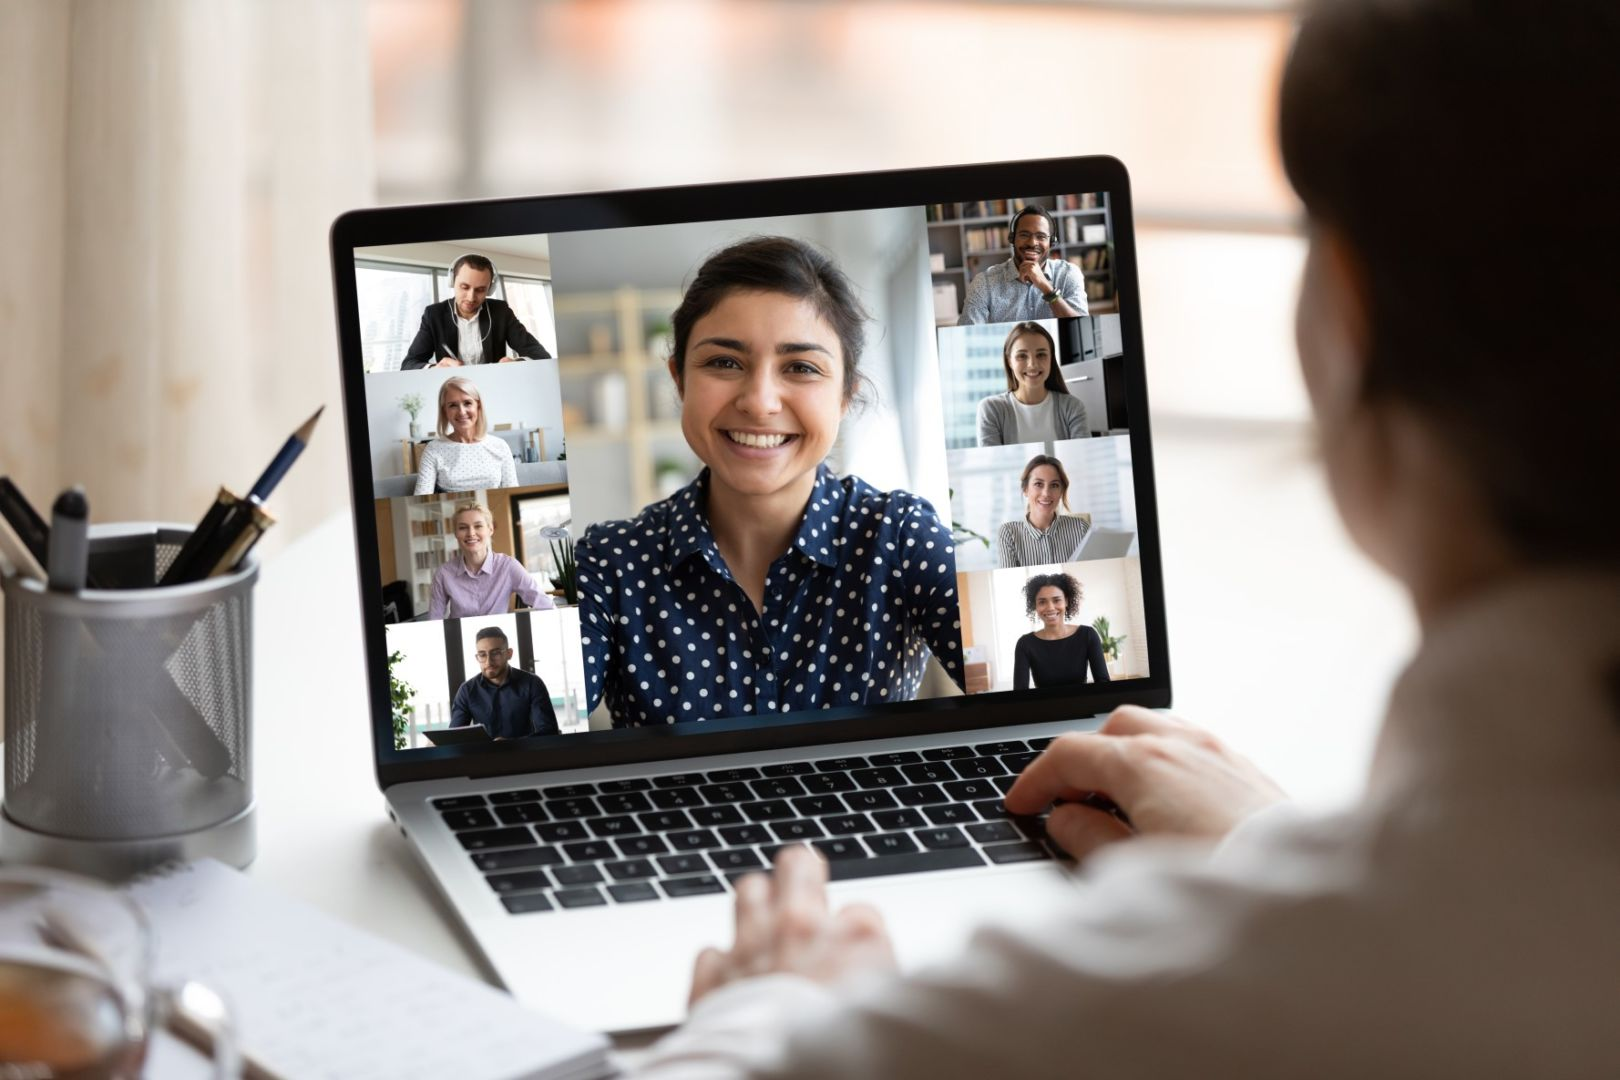 A New Way to Go Live | Microsoft Teams Webinars and Customizing Your Online Presentations